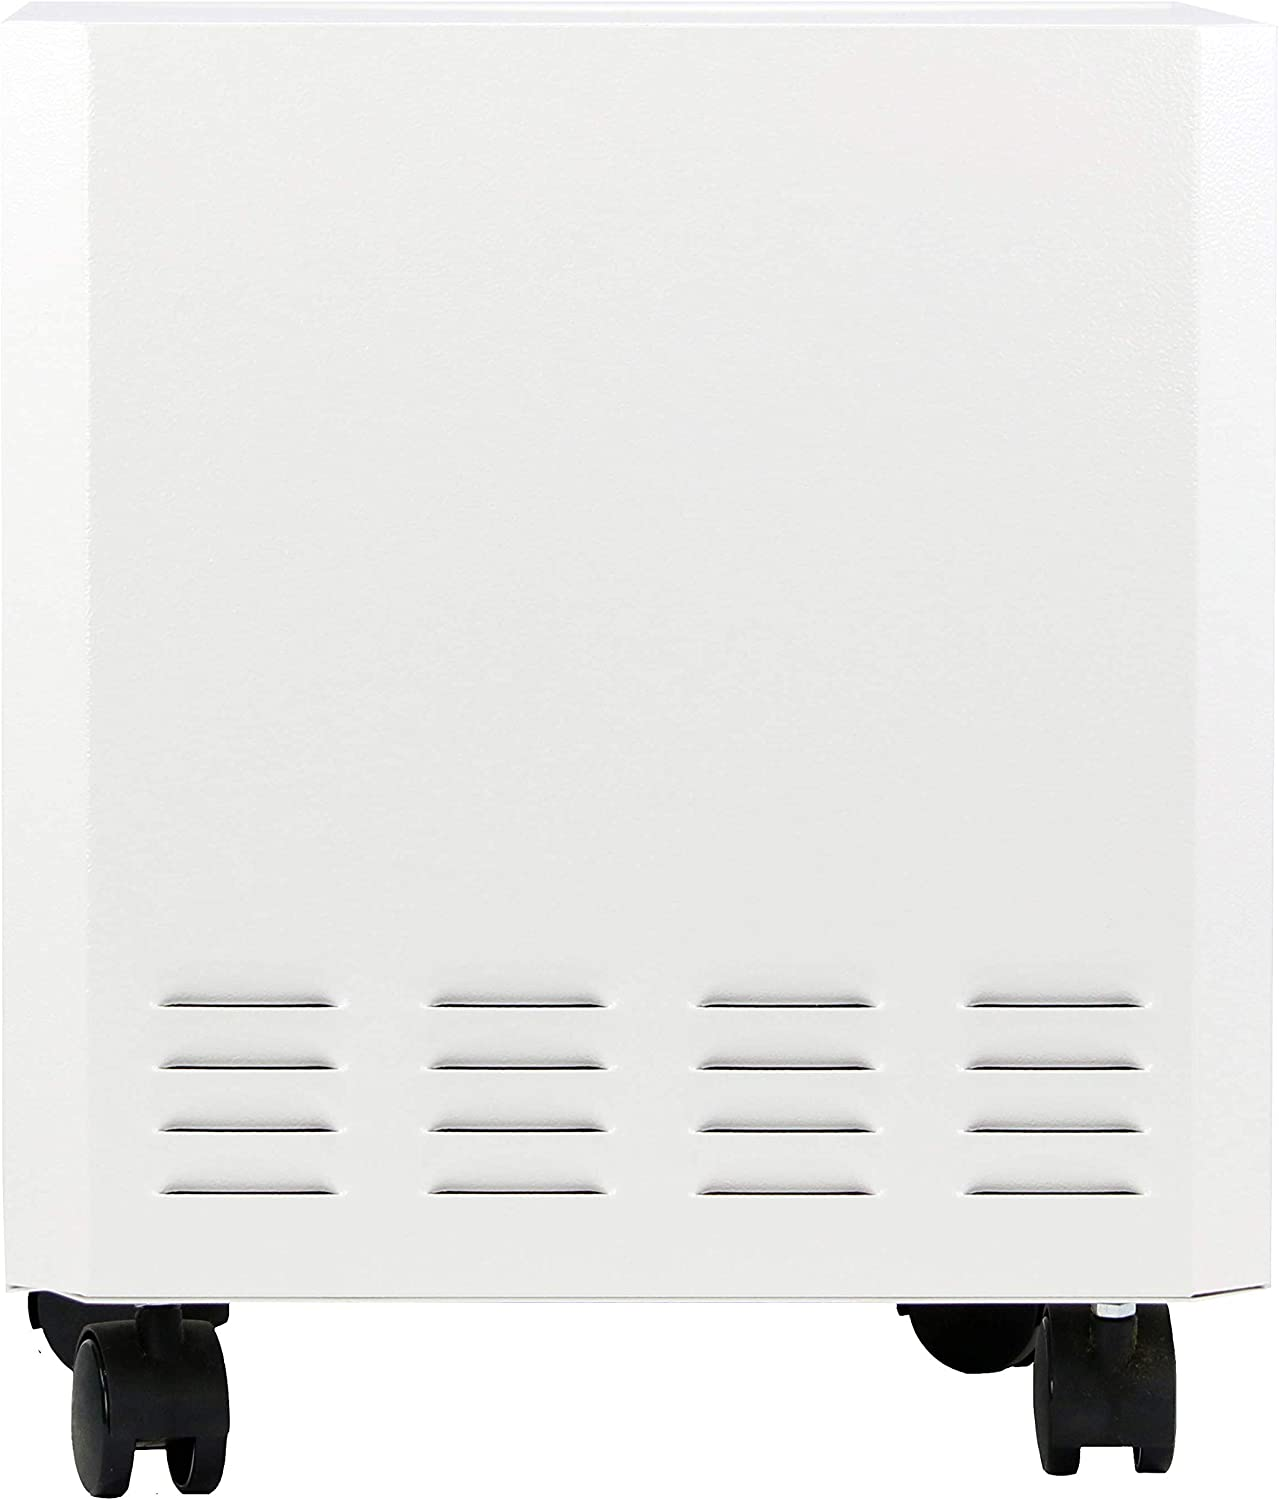 EnviroKlenz Air System - Standard Model - USA Made and Assembled Air Purifier for Home Large Room 1,000 Square Feet Whisper Quiet Removes 99.9% of viruses, bacteria, particulates, gasses (White)